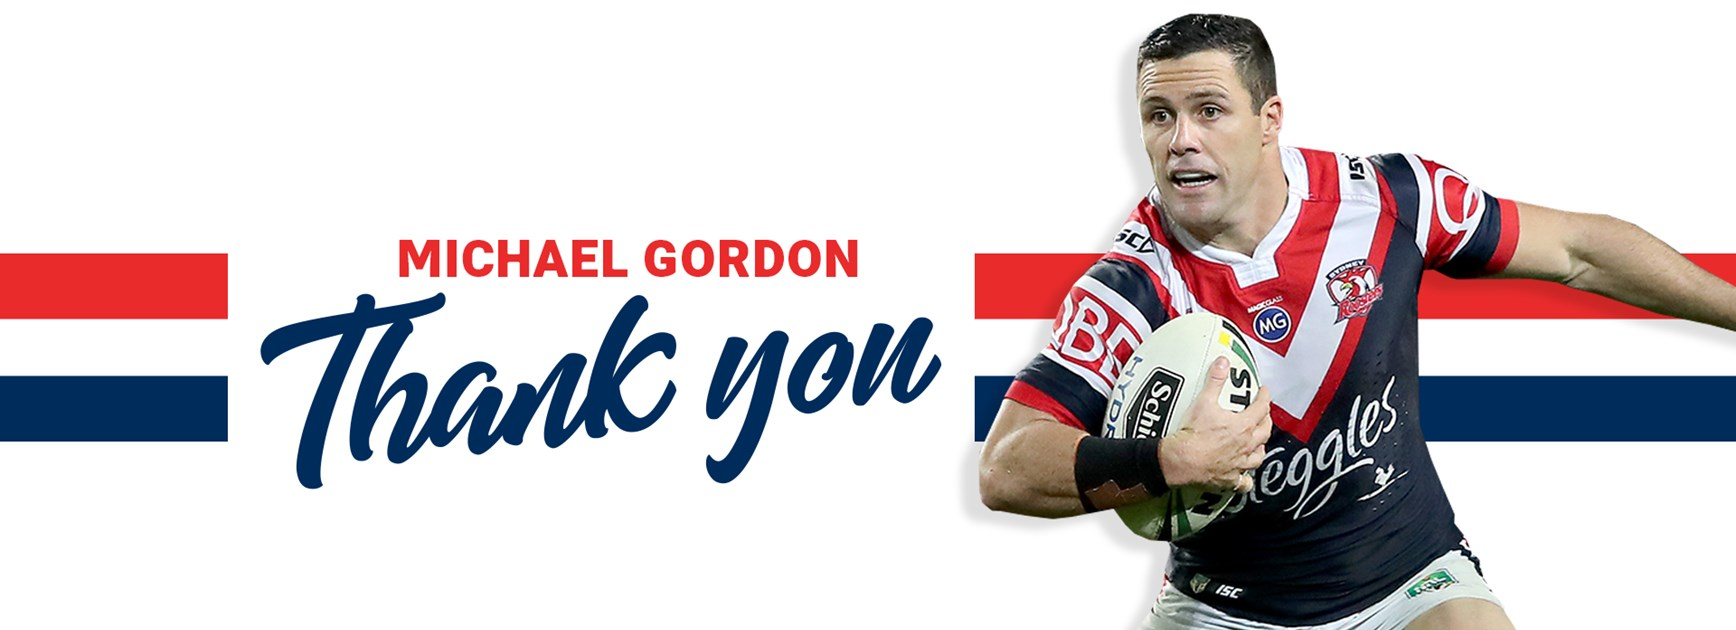 Roosters Say Farewell To Michael Gordon